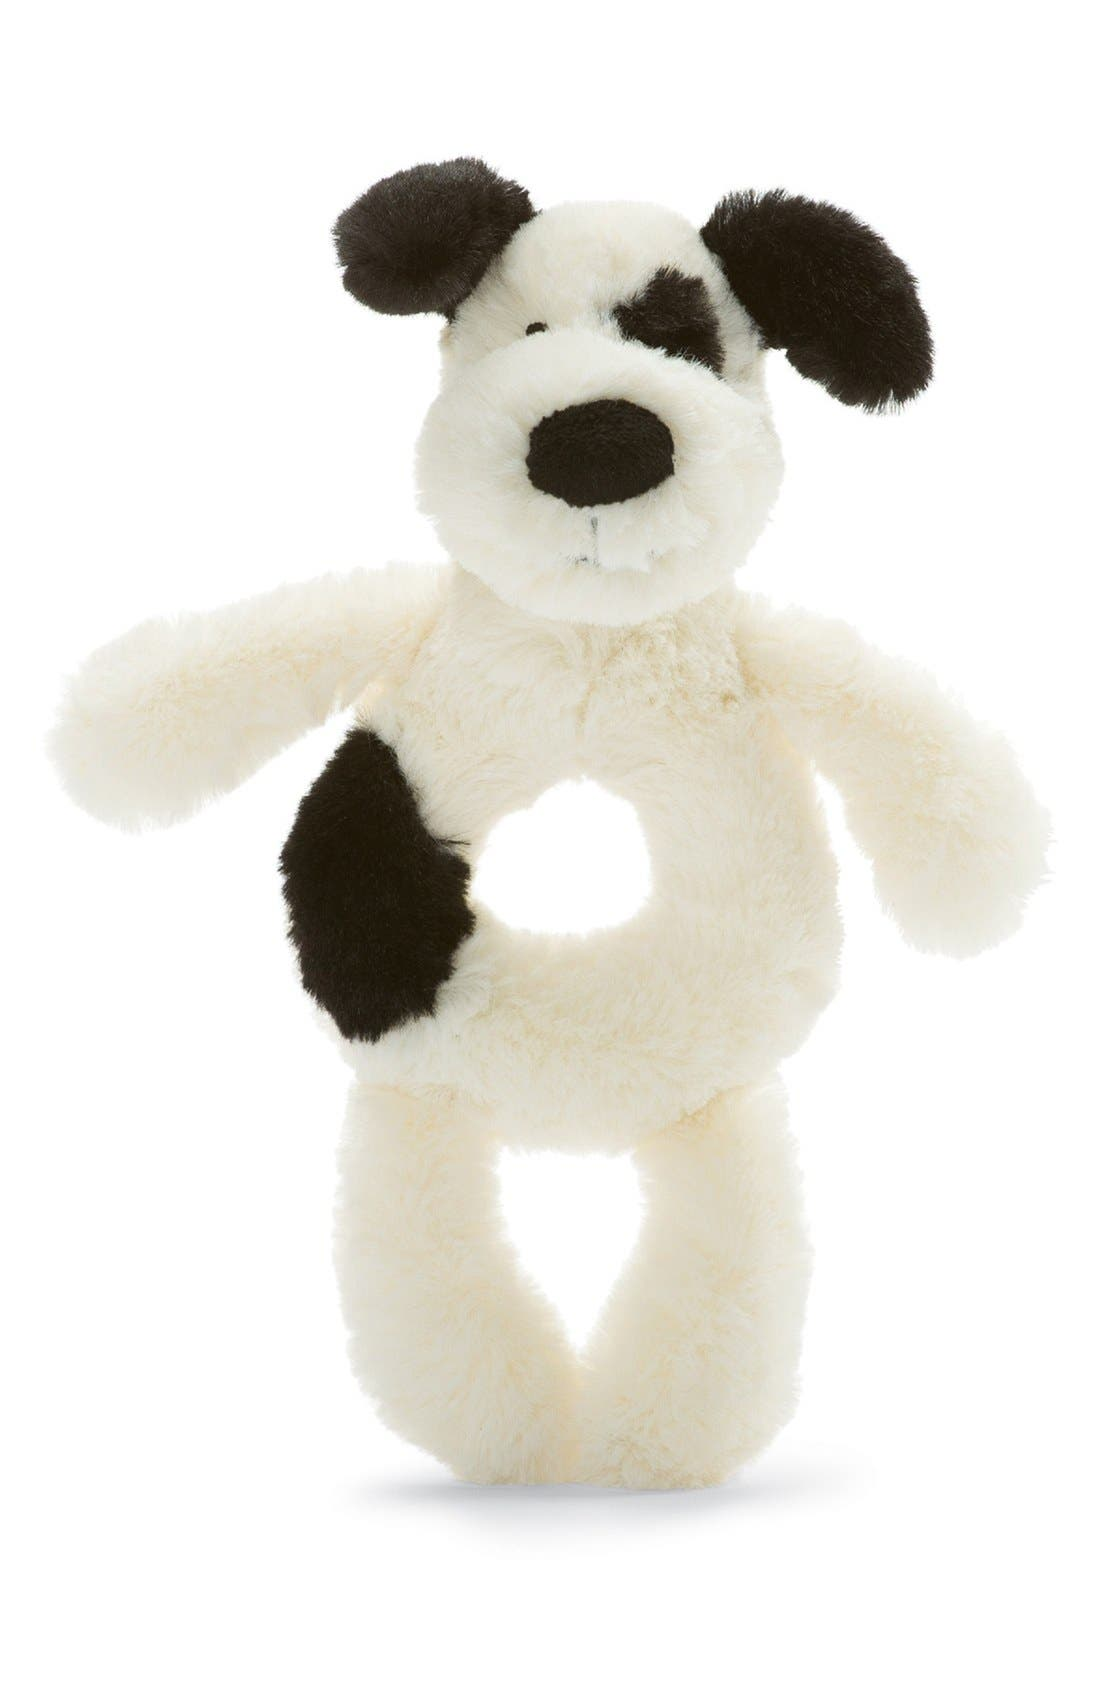 'Dog' Grabber Rattle,                             Alternate thumbnail 2, color,                             Cream/ Black